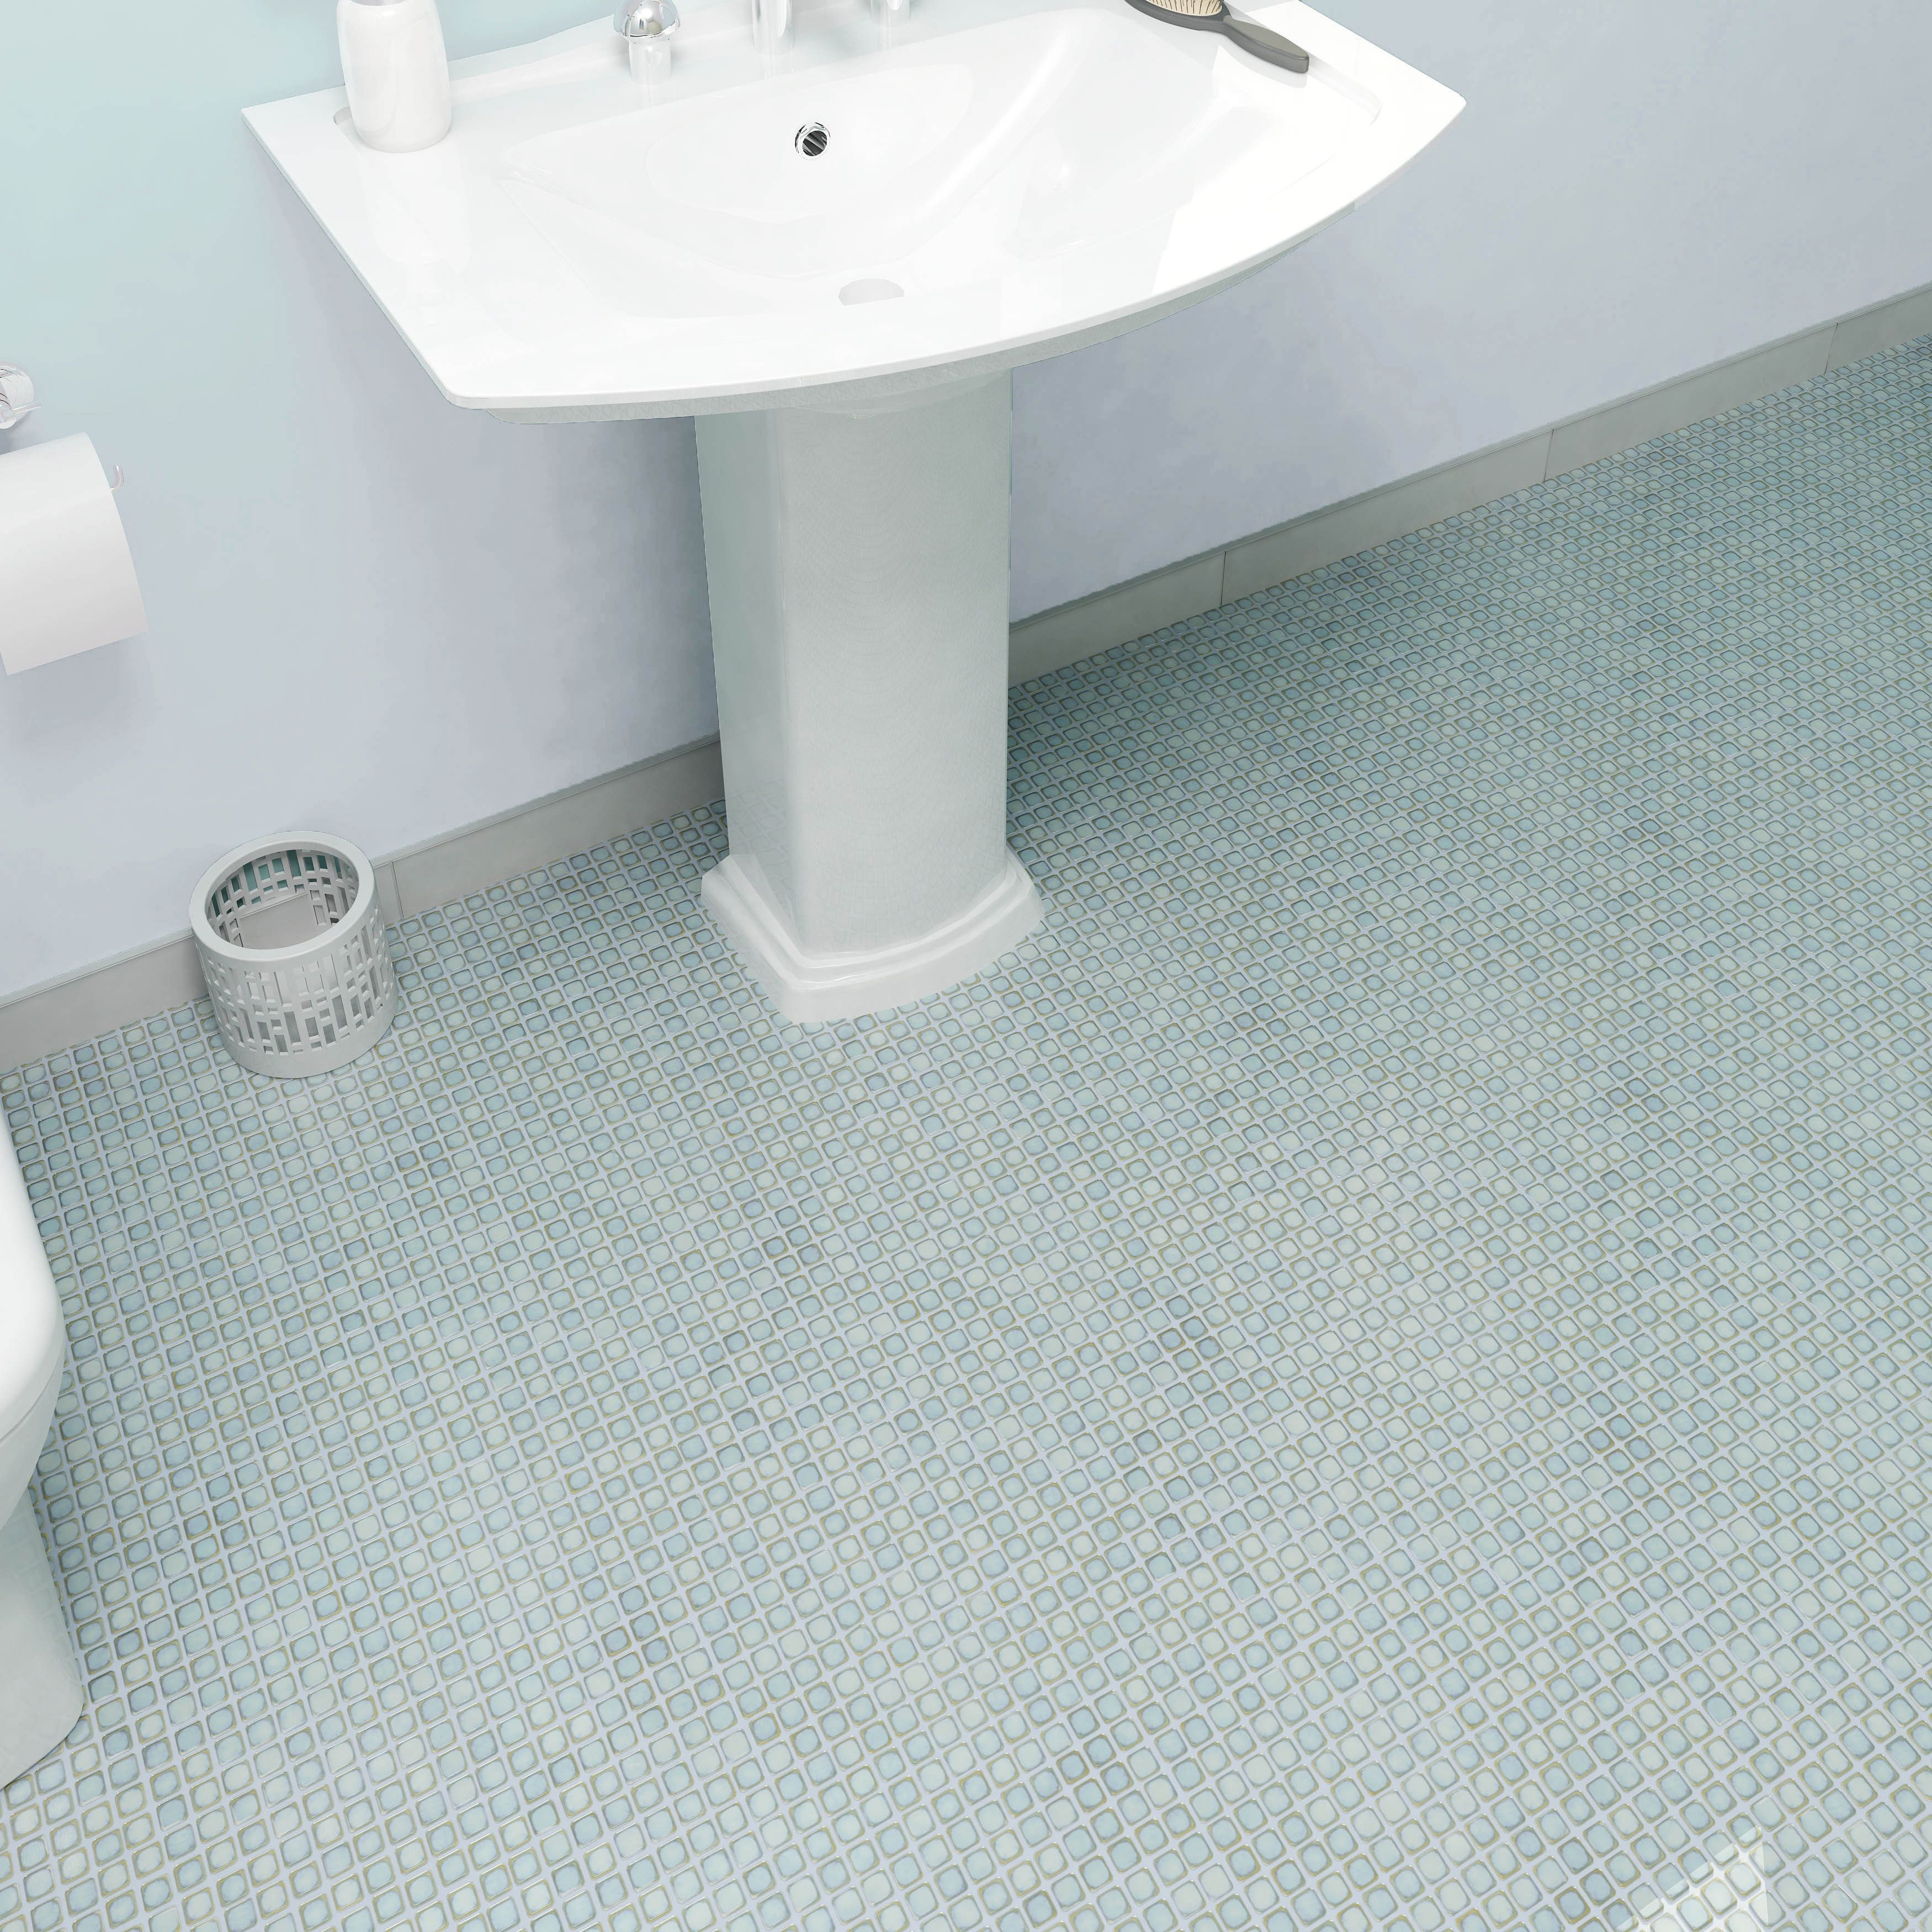 Floor tiles add the classic beauty and functionality of floor floor tiles add the classic beauty and functionality of floor tiles to your home dailygadgetfo Images